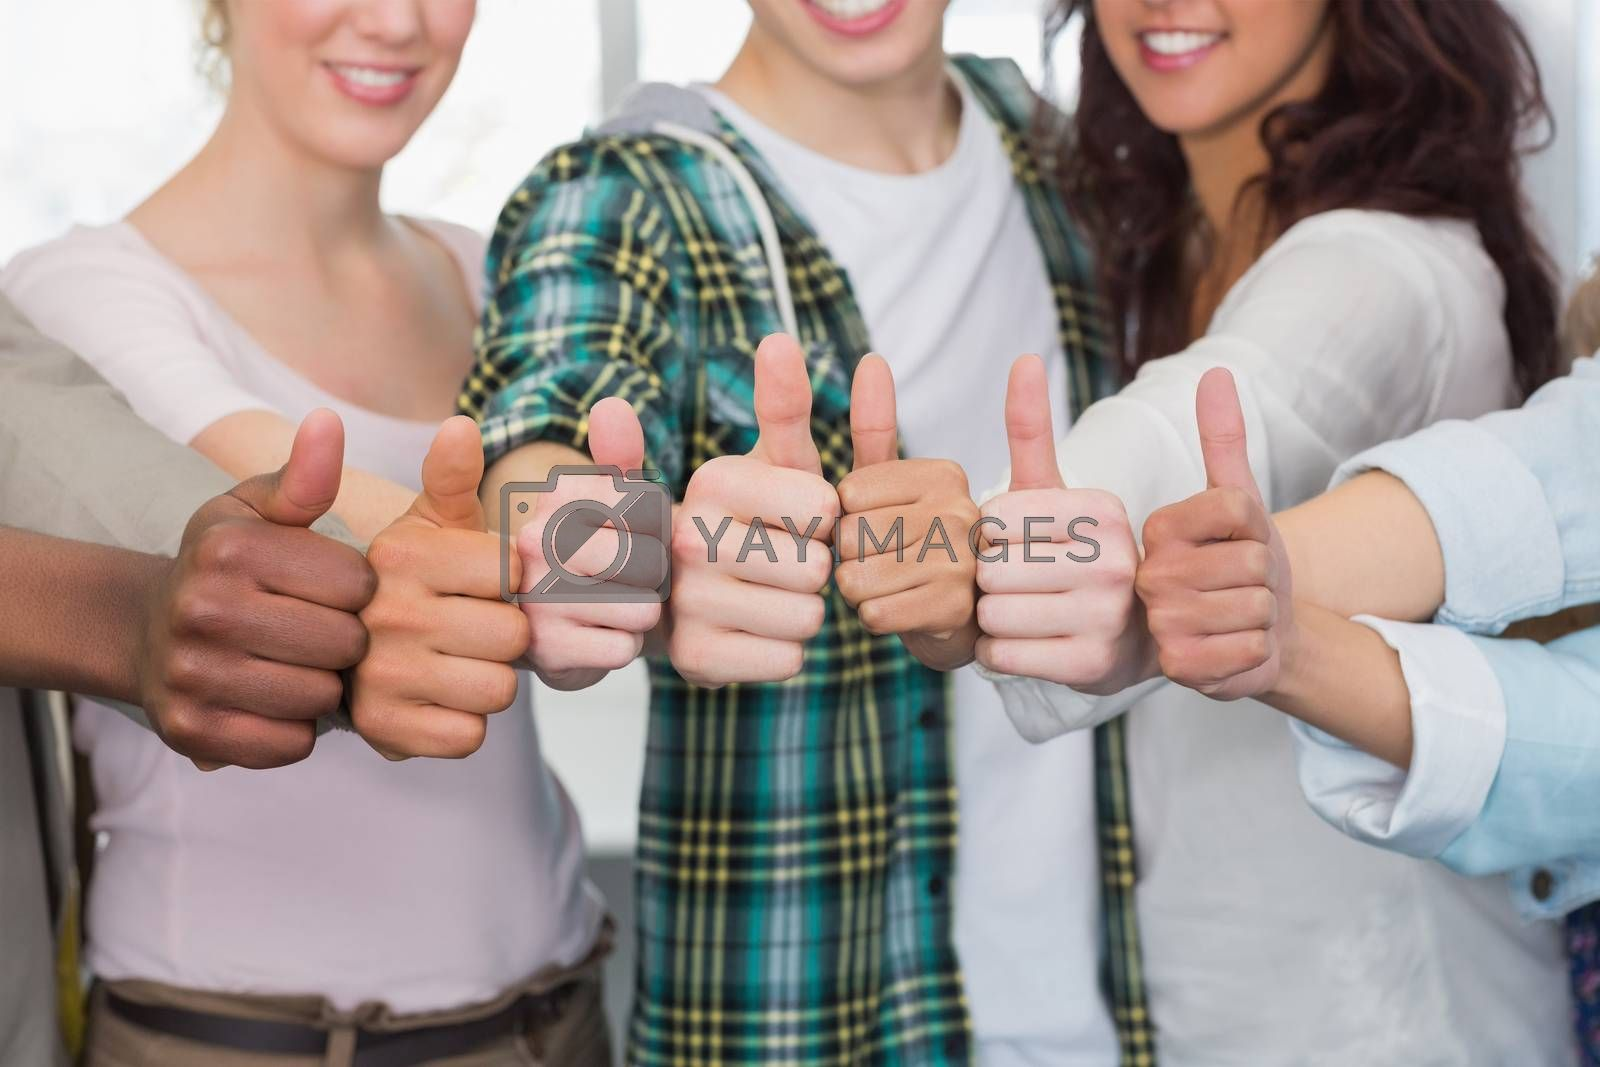 Fashion students showing thumbs up at the college